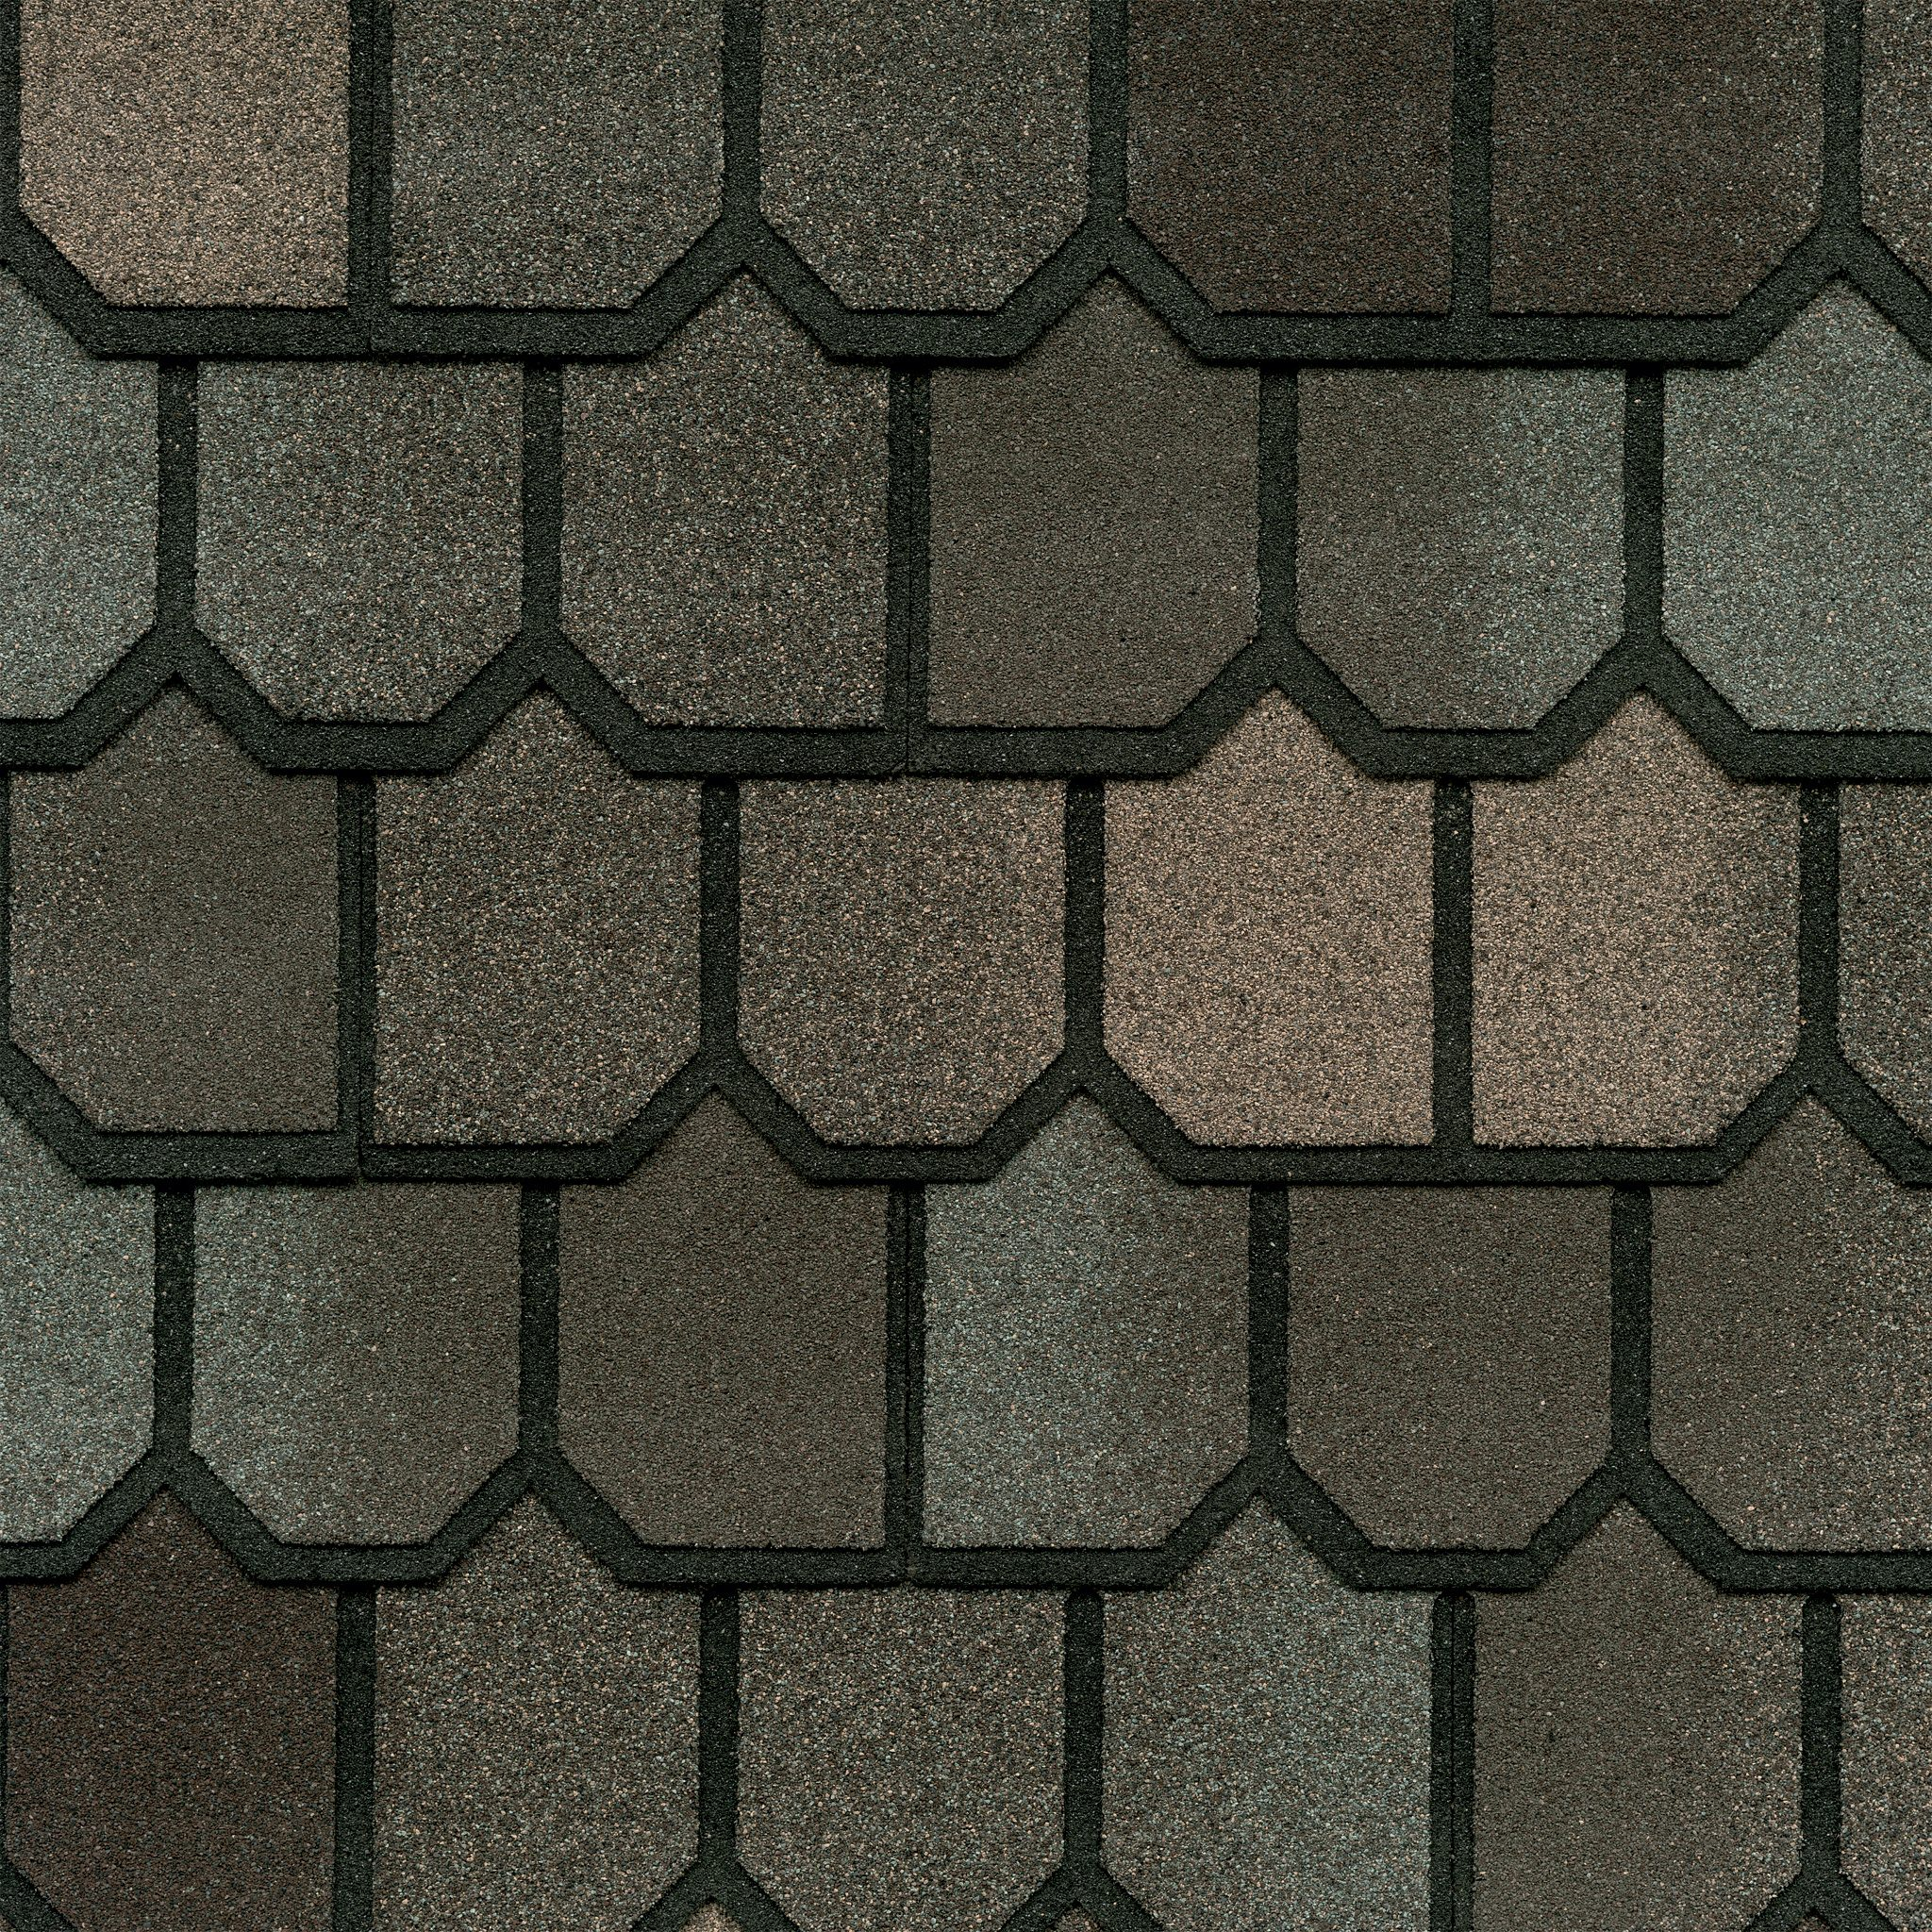 Close-up photo of GAF's Country Mansion II Weathered Wood shingle swatch